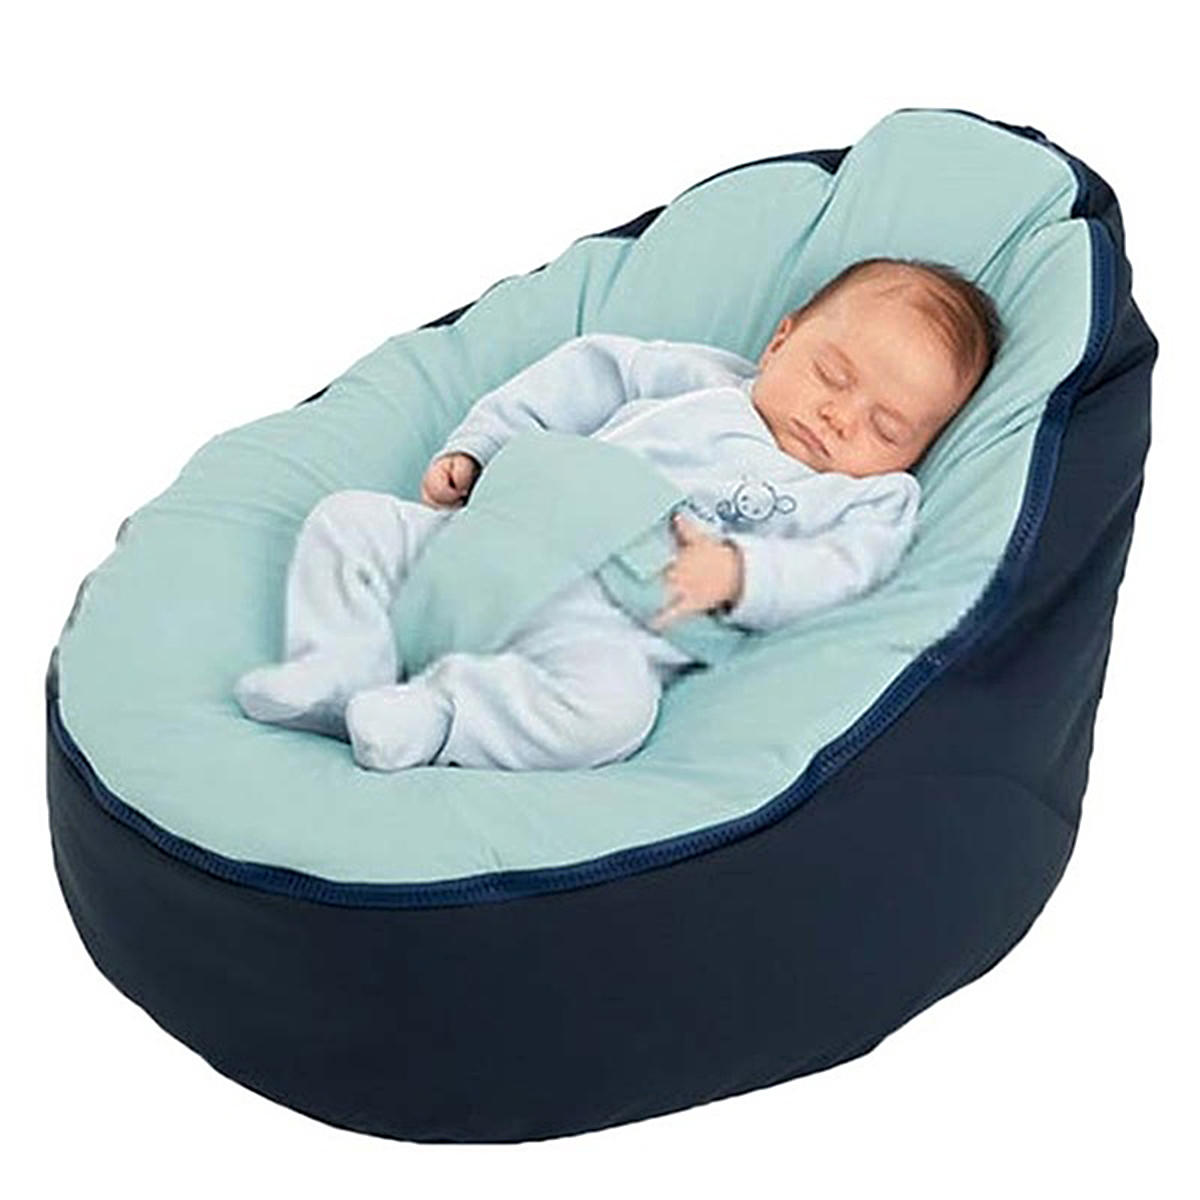 Awesome Canvas Blue Vine Baby Infant Bean Bag Snuggle Bed C Without Filling Lazy Sofa Pdpeps Interior Chair Design Pdpepsorg